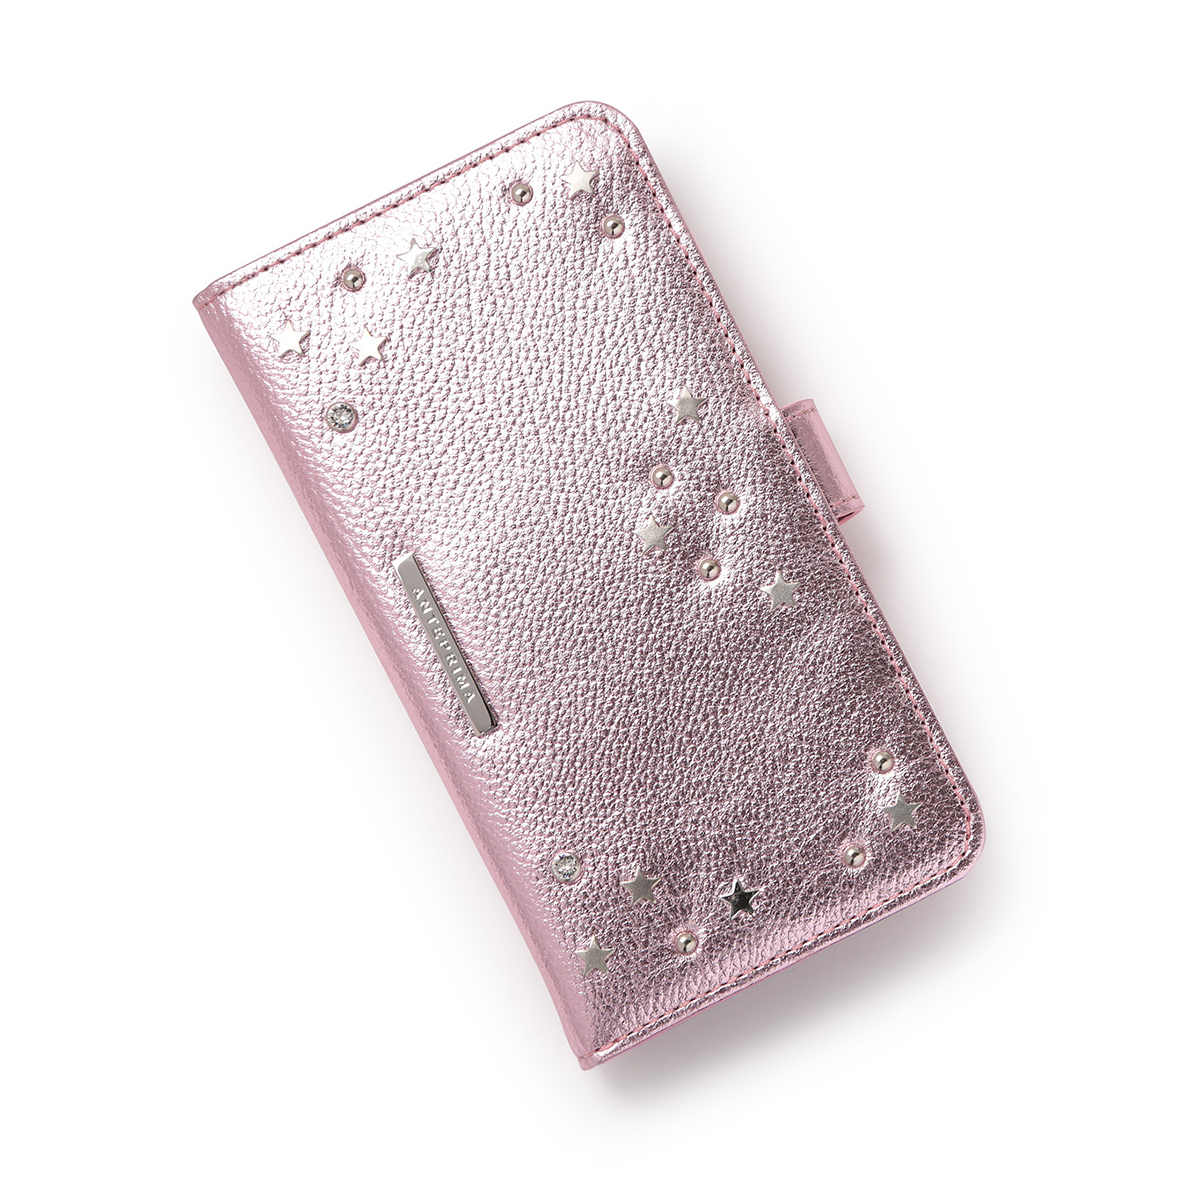 【ANTEPRIMA公式】アンテプリマ/マルテ/iPhone 6・7対応ケース/ピンク/ANTEPRIMA/EANP10645/IPHONE 6&7 CASE【対象商品20000円以上購入でチャームプレゼント】